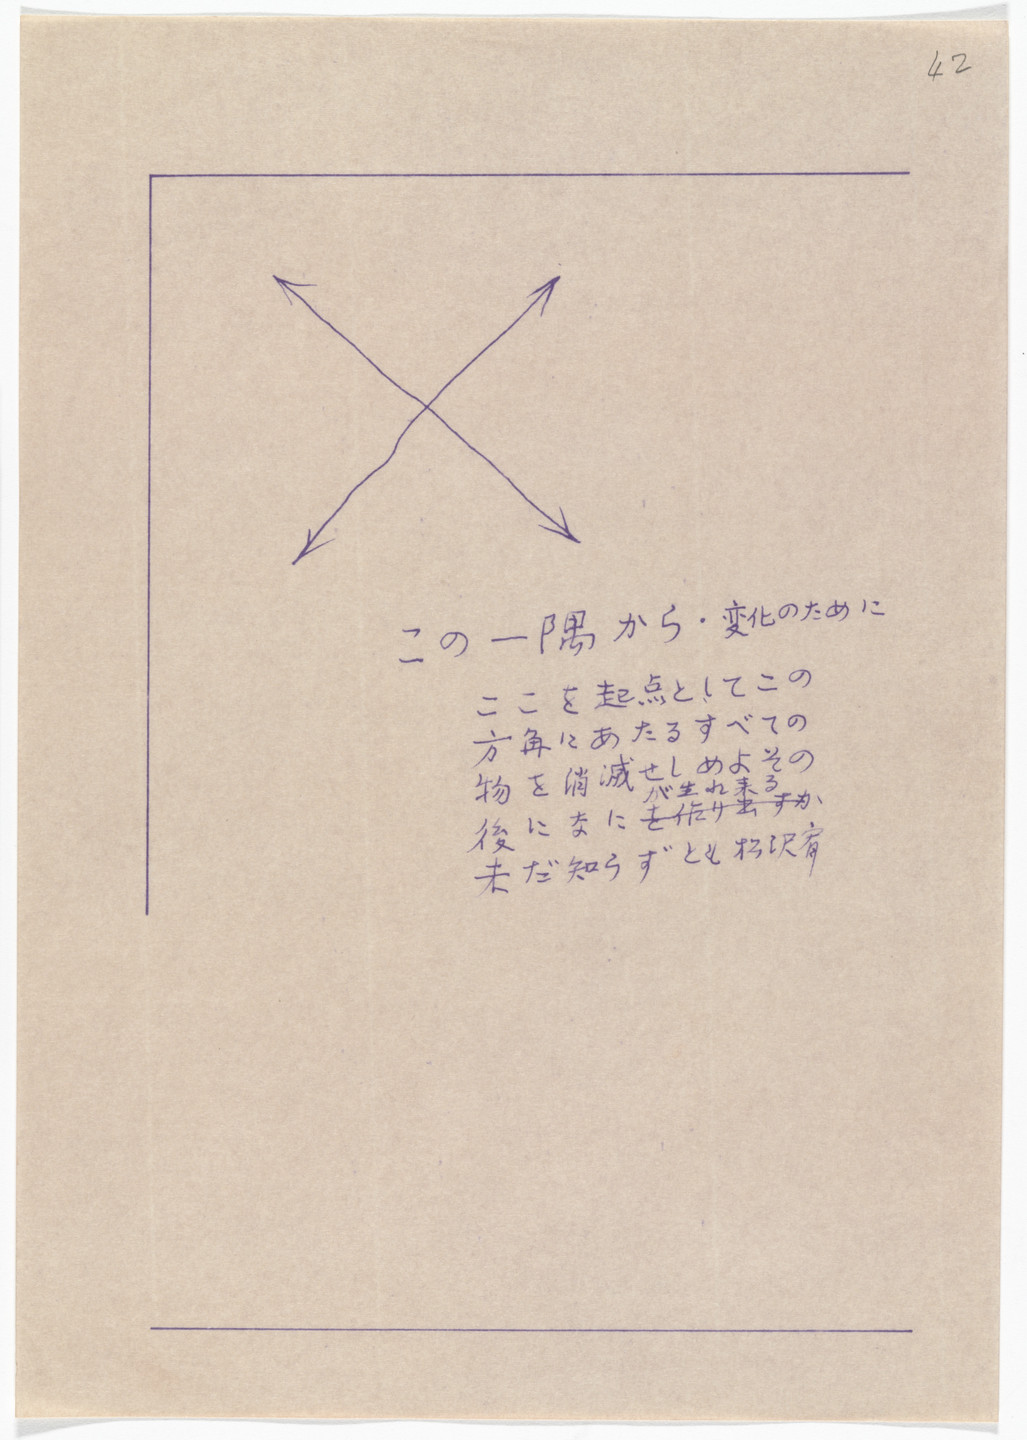 Yutaka Matsuzawa. From This Corner: For a Change from The Whole Works. 1969